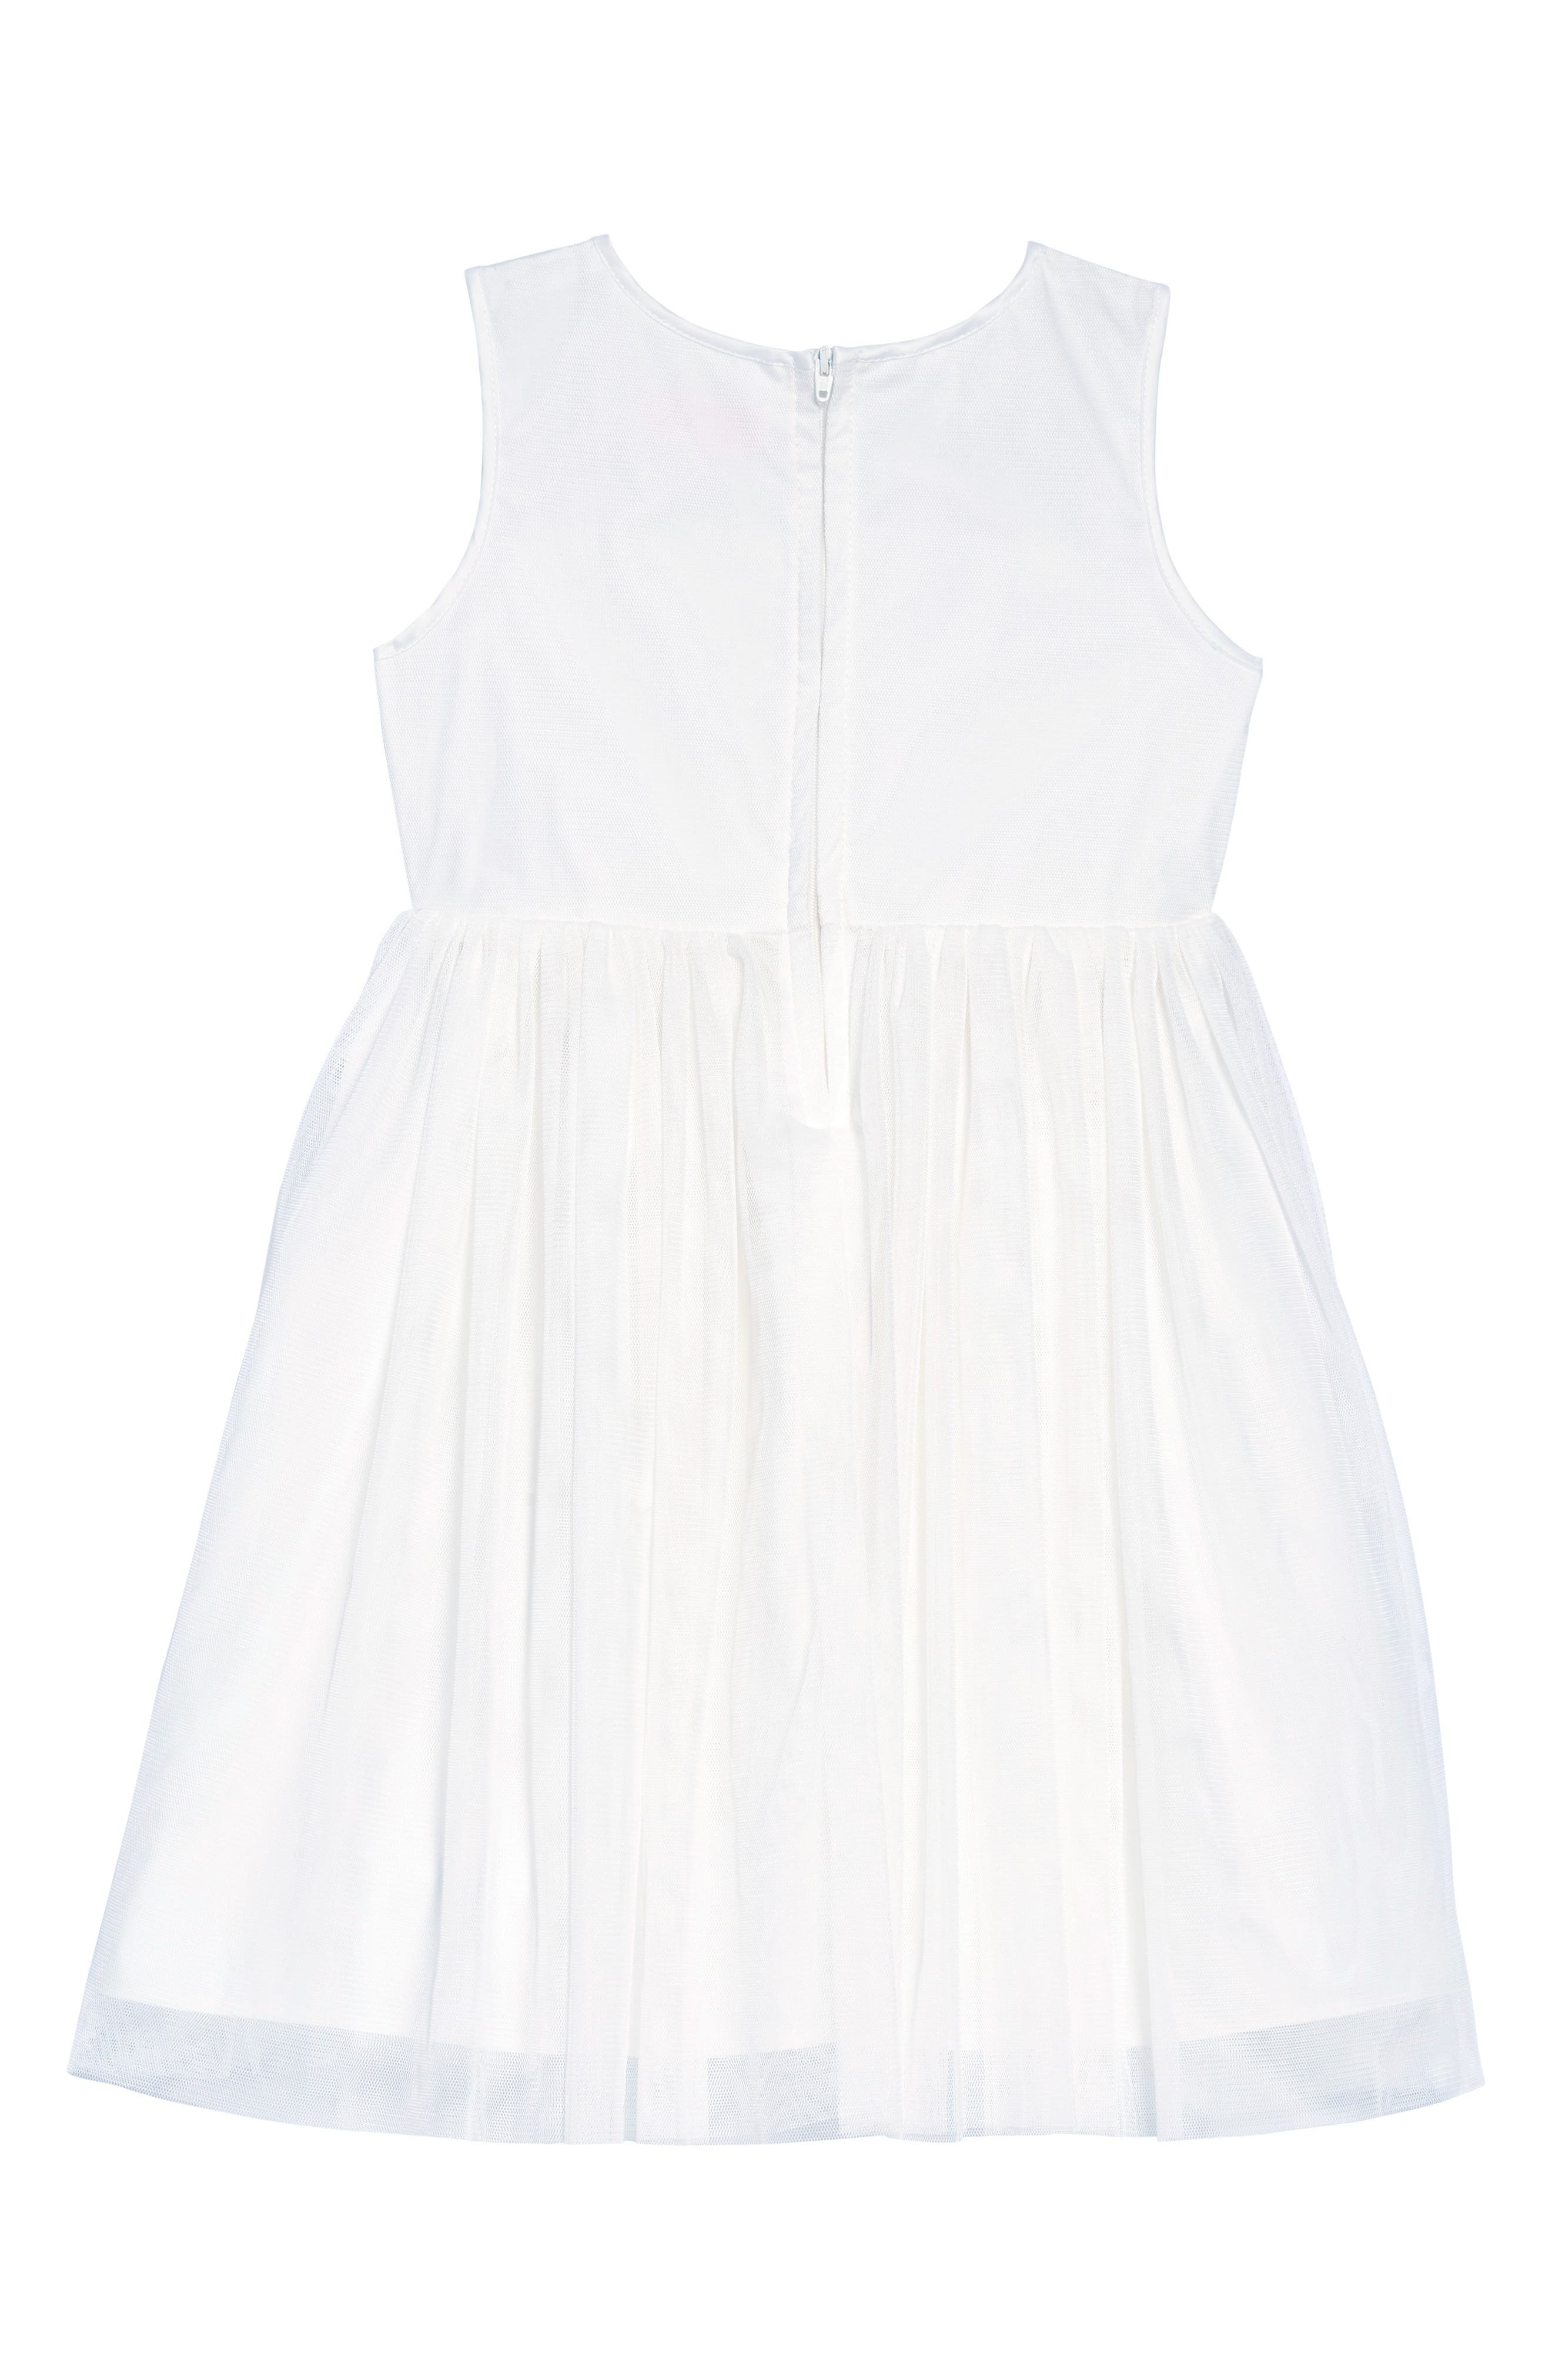 POPATU, Daisy Tulle Dress, Alternate thumbnail 2, color, WHITE